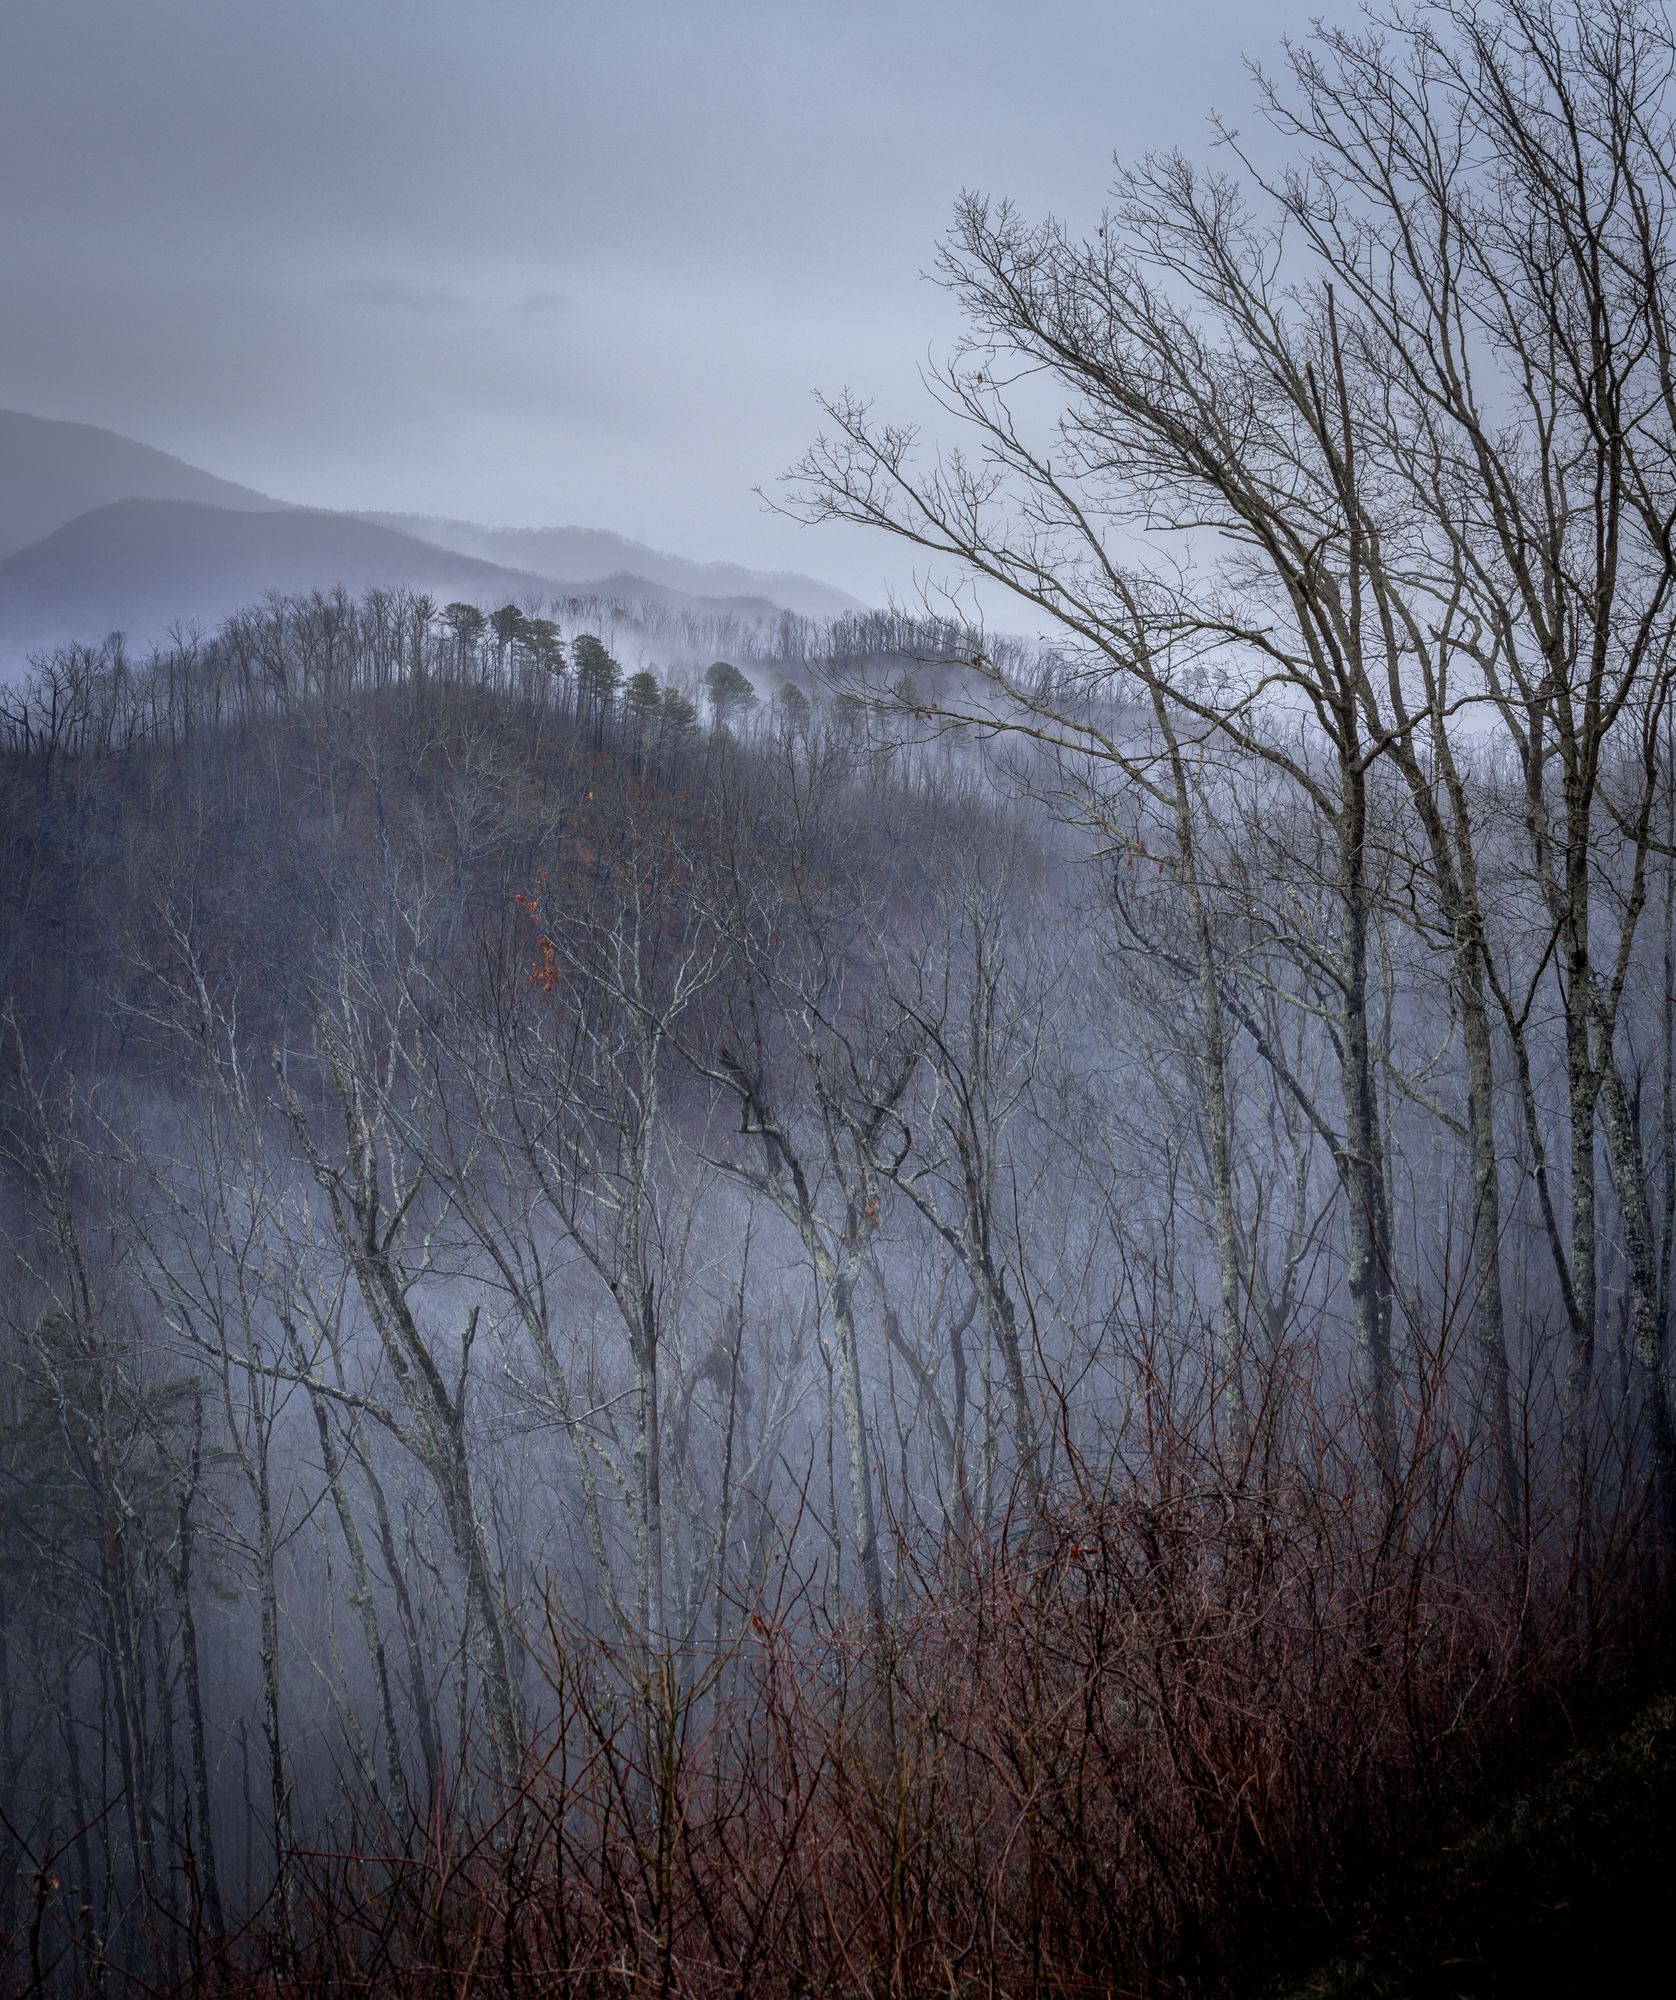 Misty mountains at Great Smoky Mountains National Park